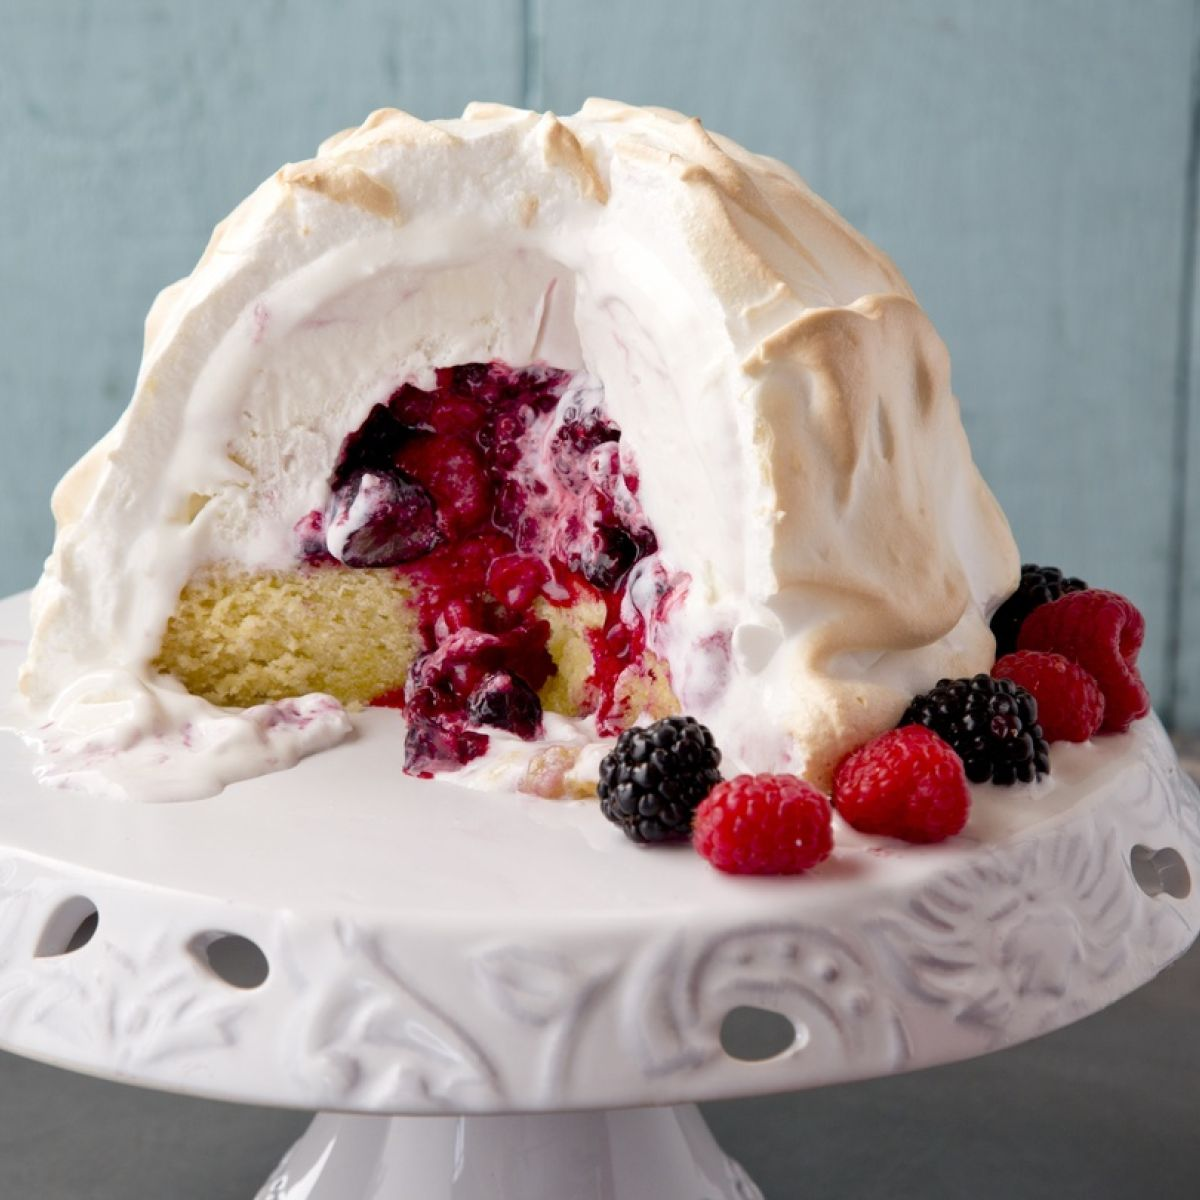 Baked Alaska A Retro Dessert Where Less Is More